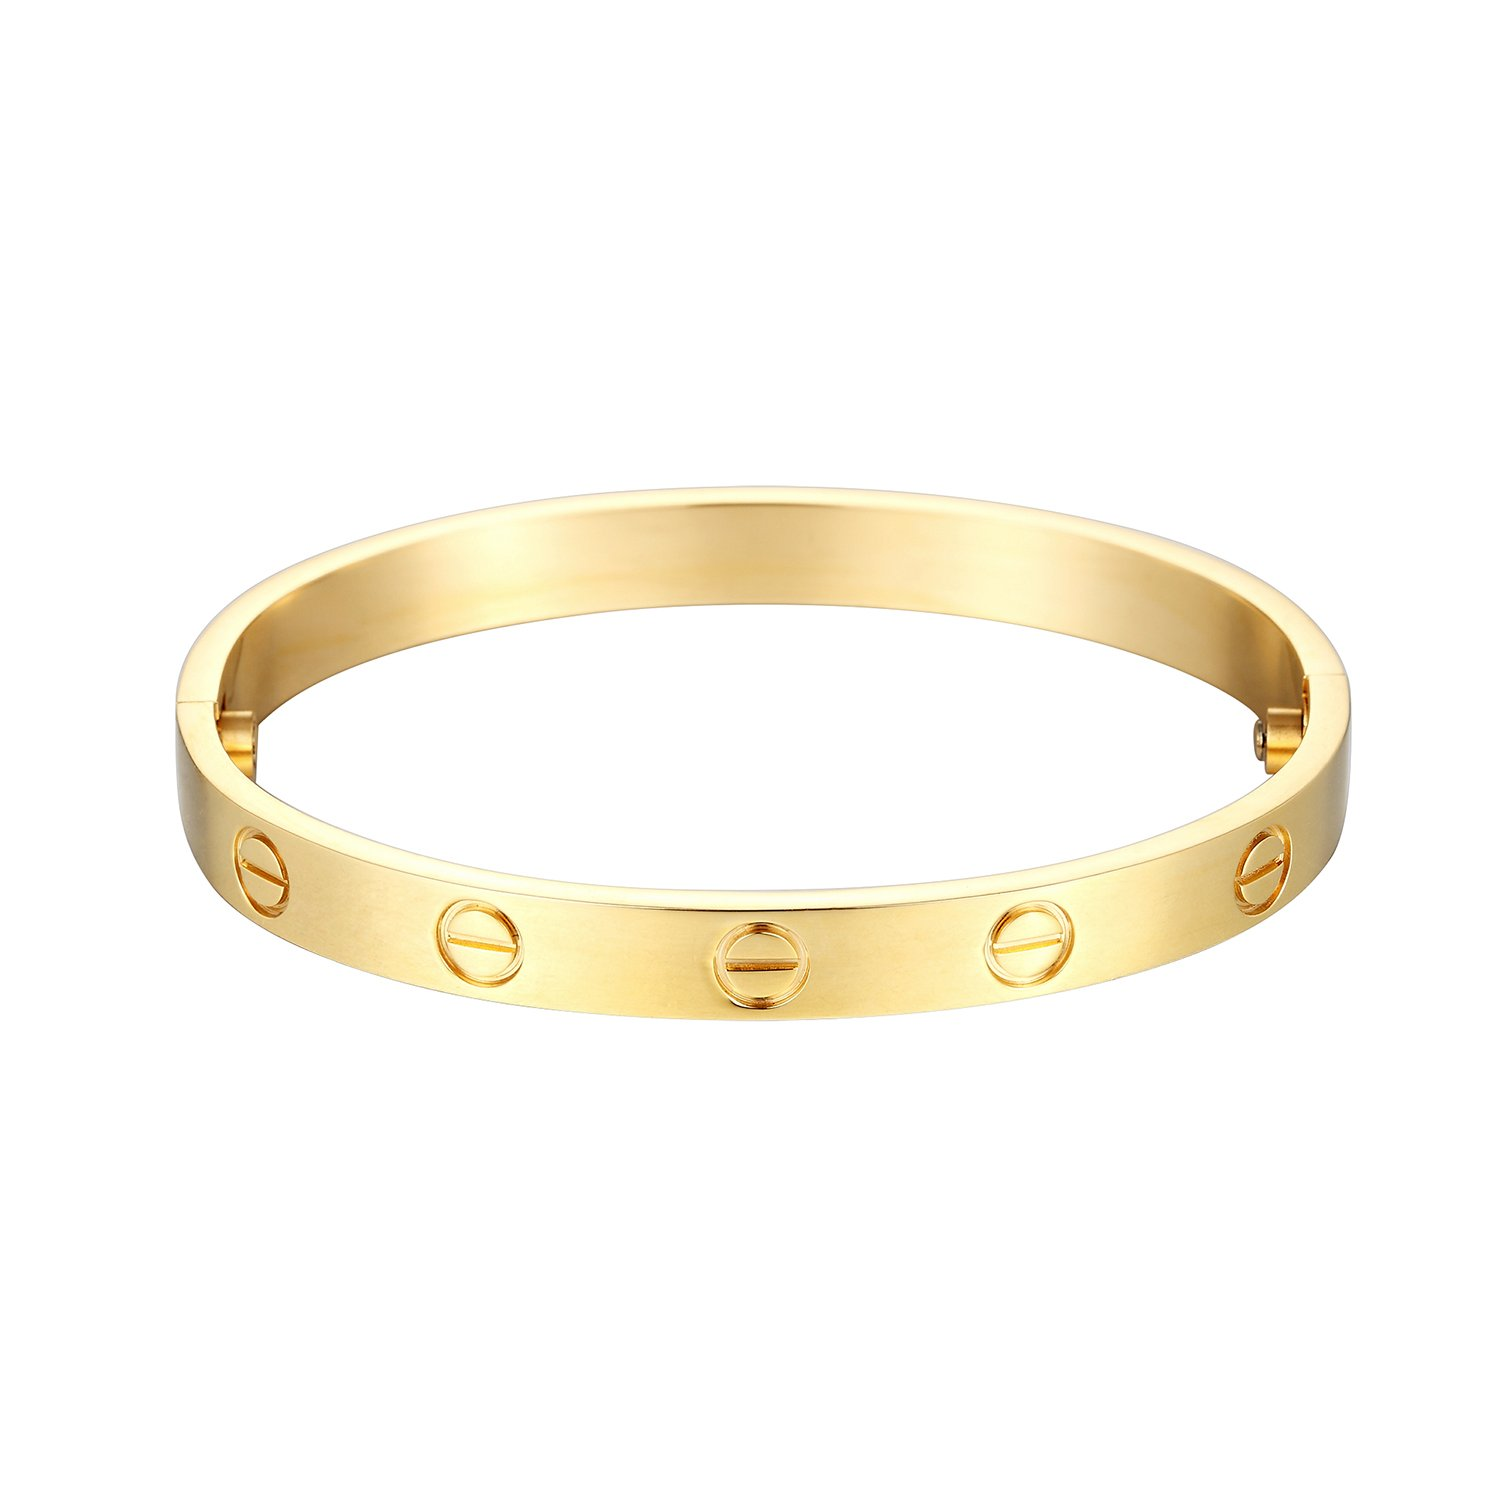 Z.RACLE Love Bangle Bracelet Stainless Steel Screw - Best Gift Love - 6.3IN Gold by Z.RACLE (Image #1)